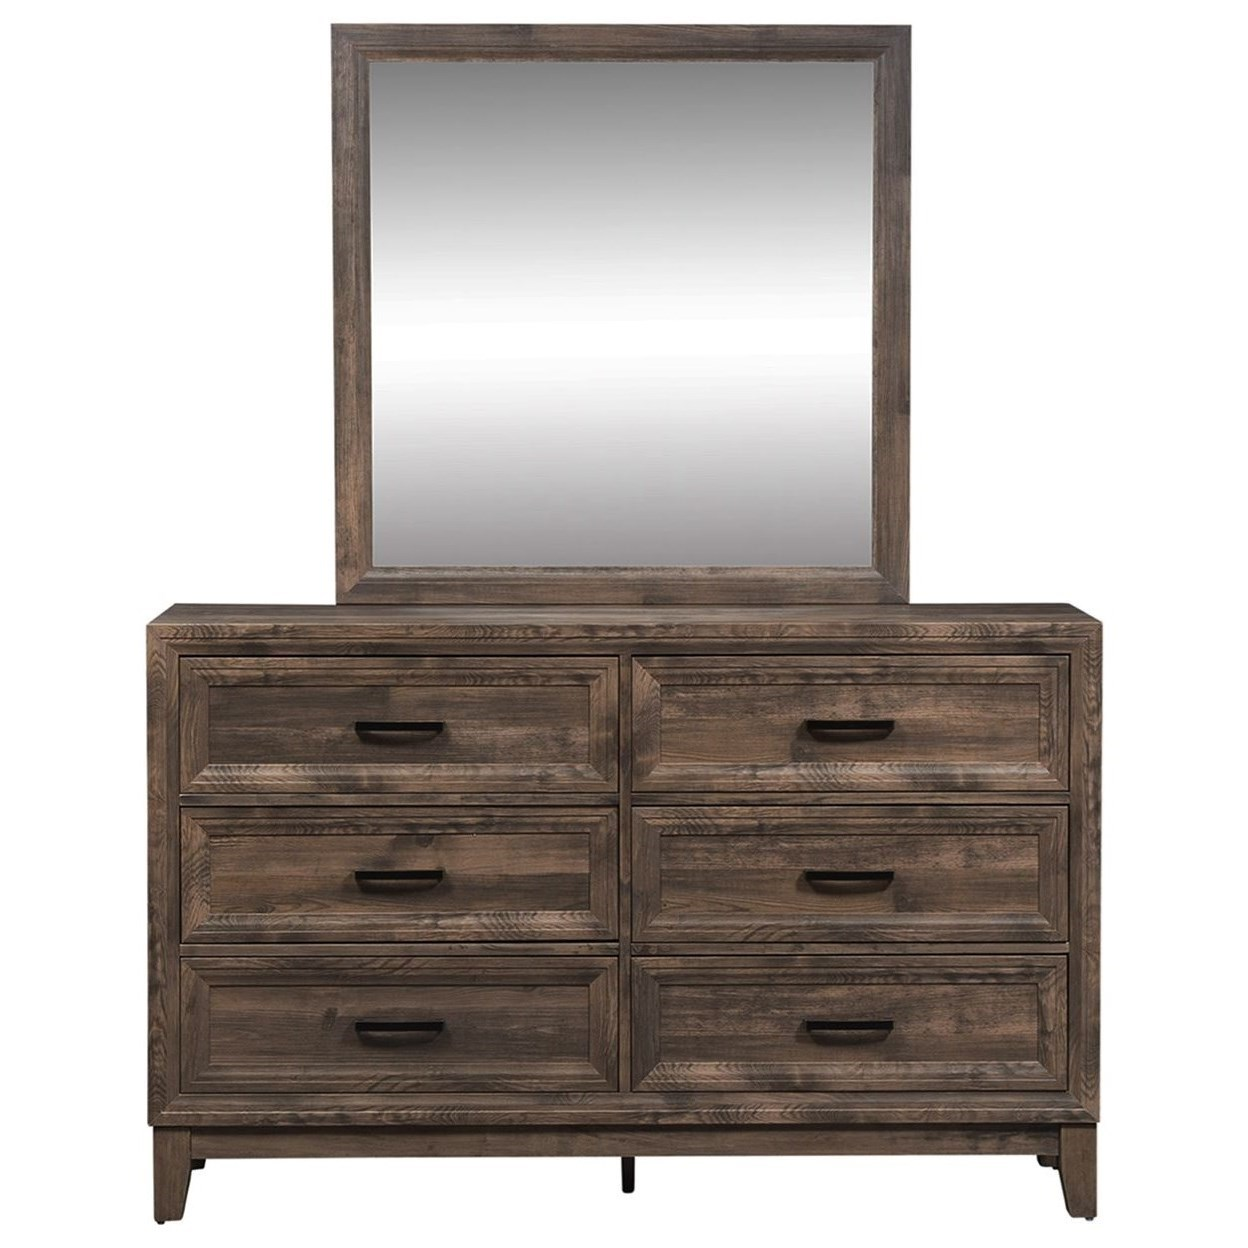 Ridgecrest Dresser and Mirror Set by Libby at Walker's Furniture